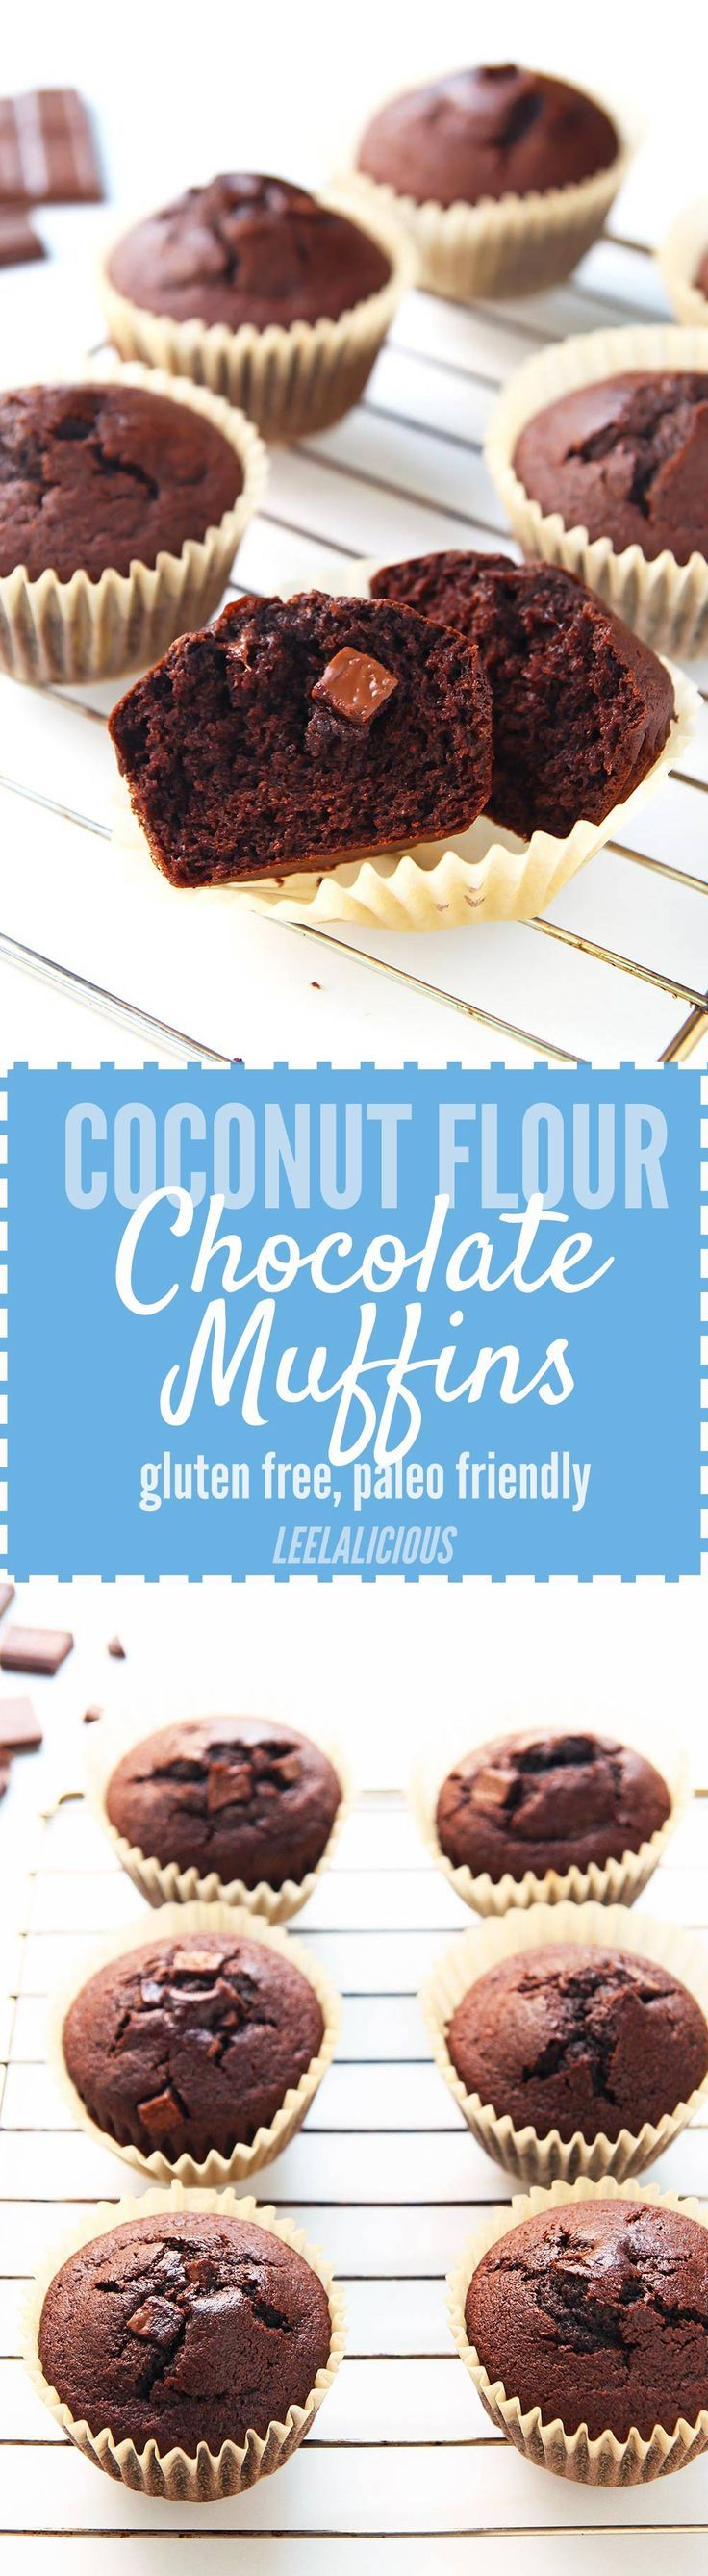 These Double Chocolate Muffins are made with coconut flour and no refined sugar. For a delicious healthier treat that is gluten free, clean eating and paleo friendly.